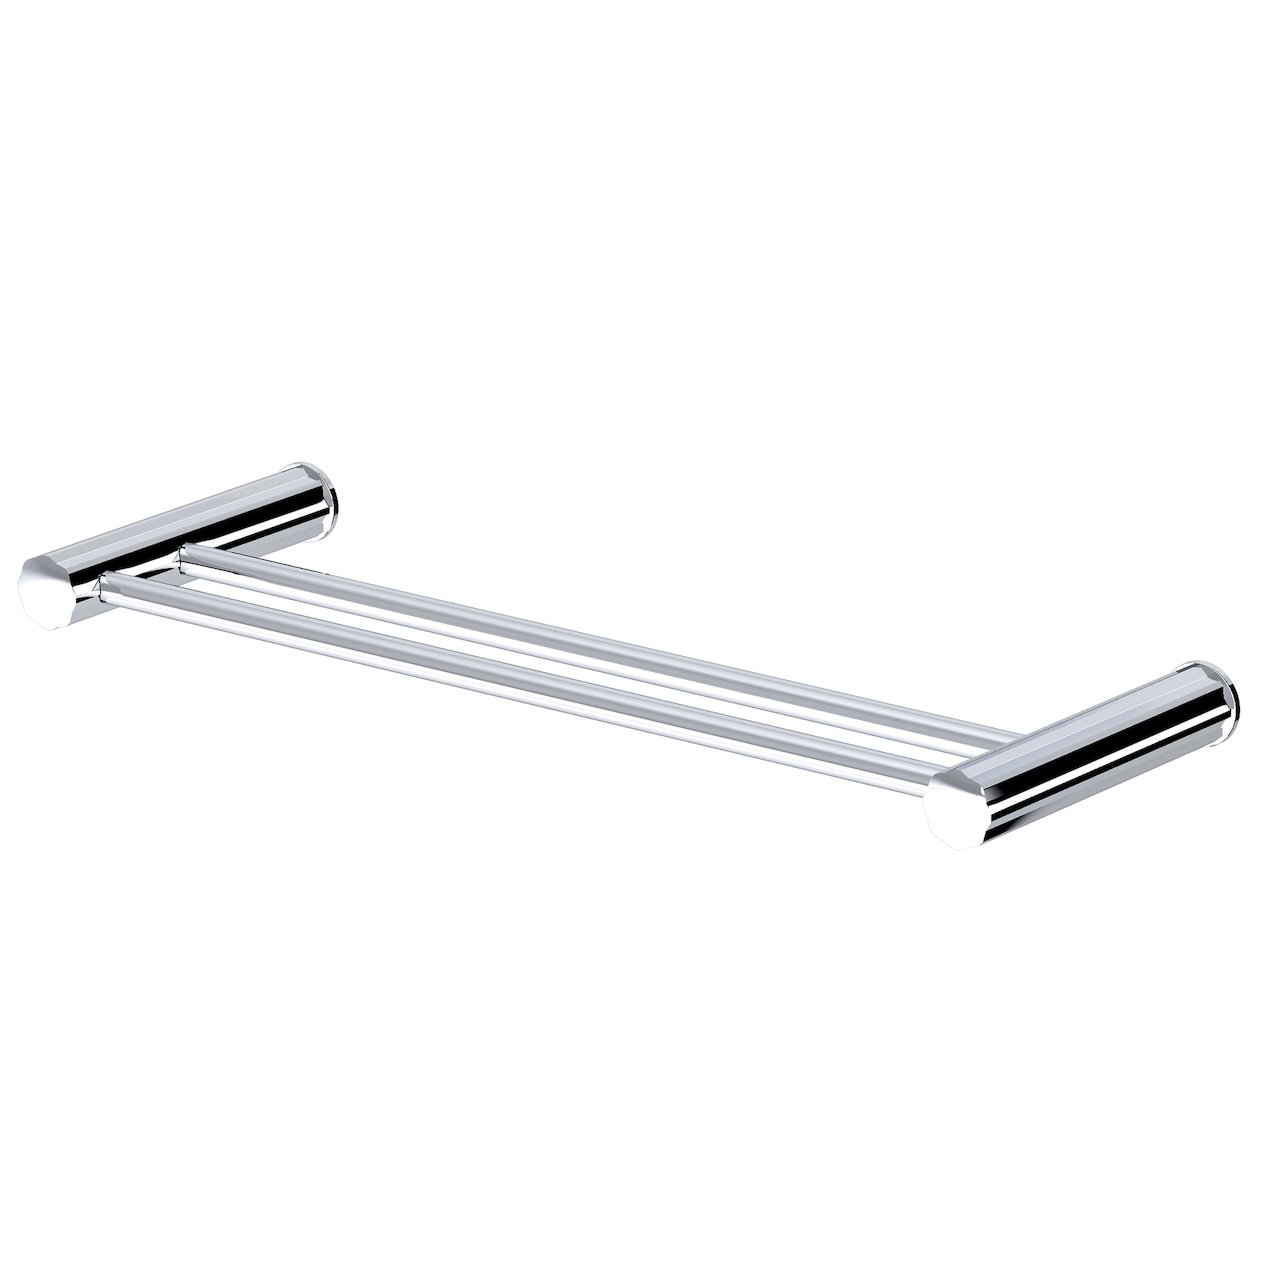 Double towel rack cm40 Corinthia